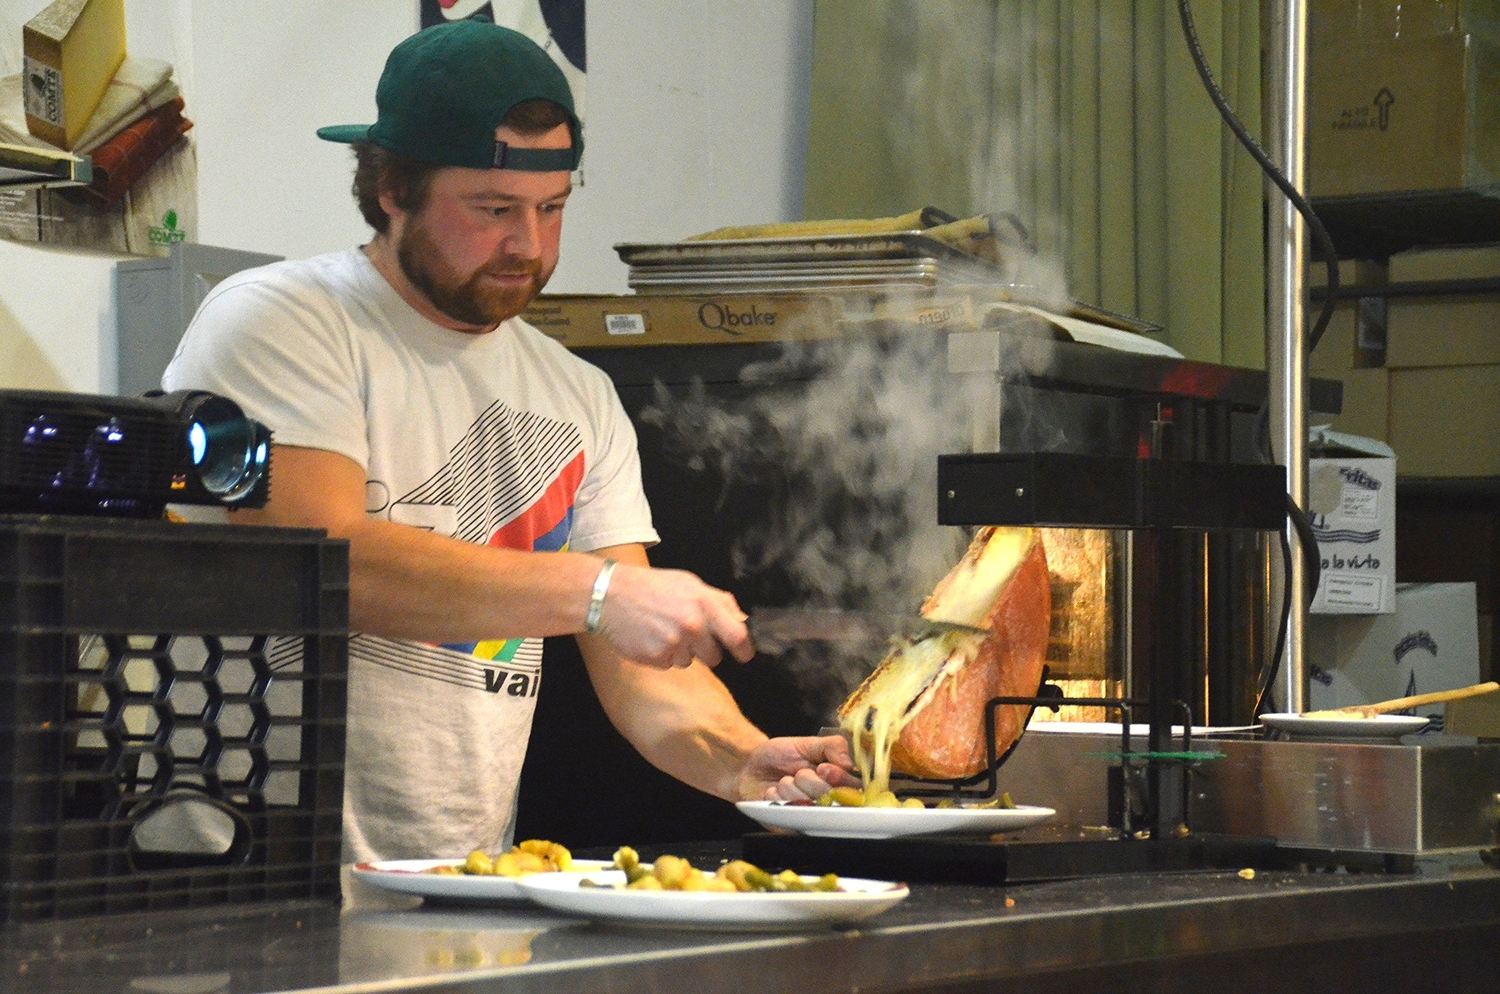 Tripp scrapes a layer of melted cheese on top of the potatoes to make a plate of raclette